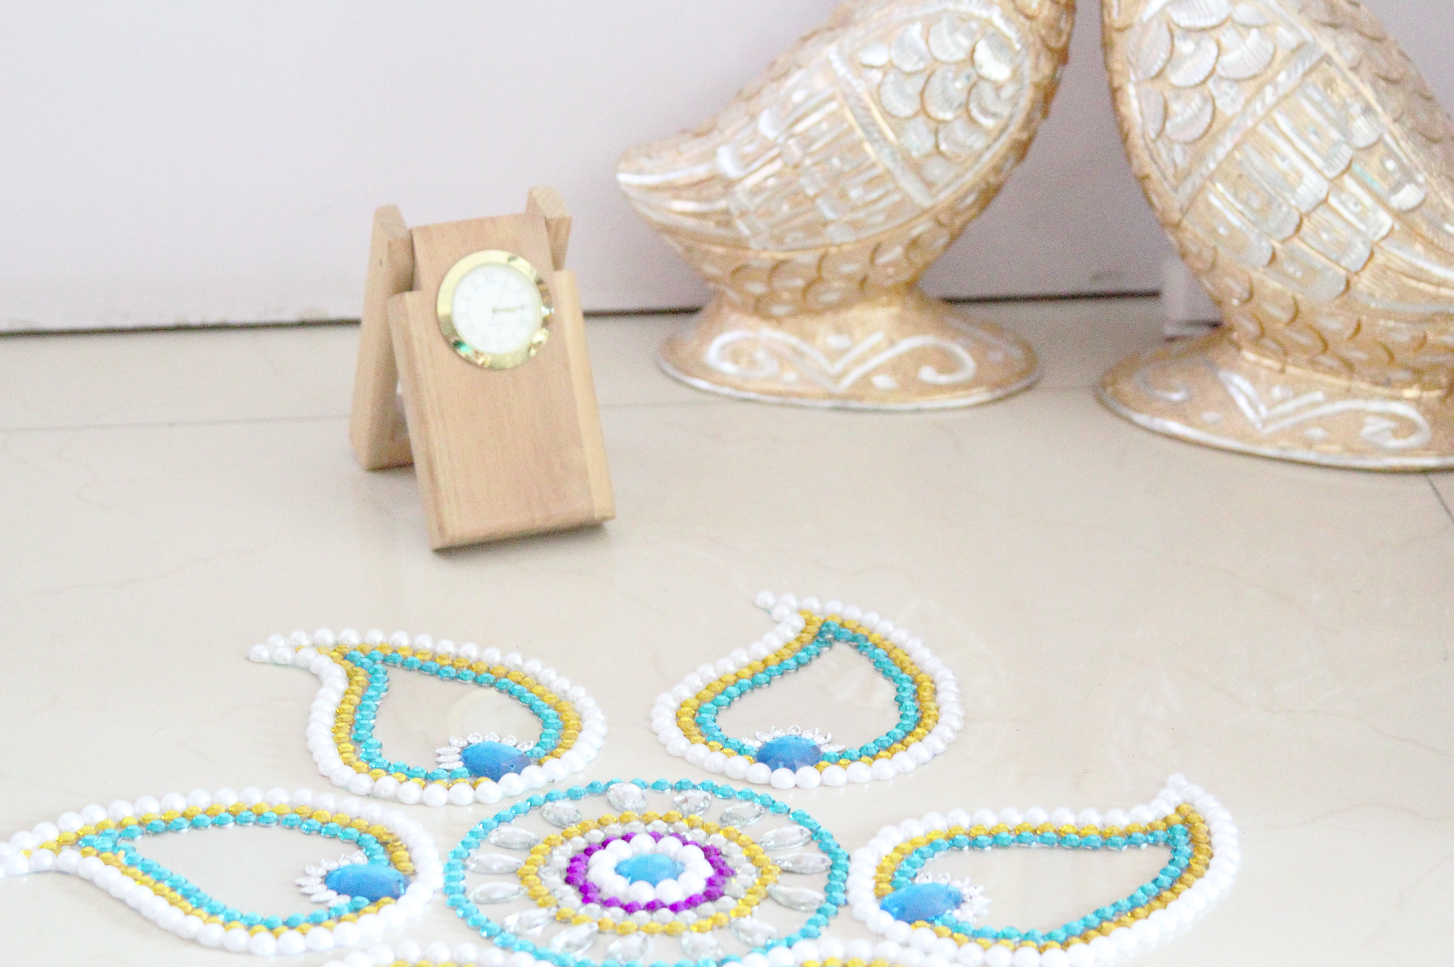 diy gemstone rangoli inspired decor